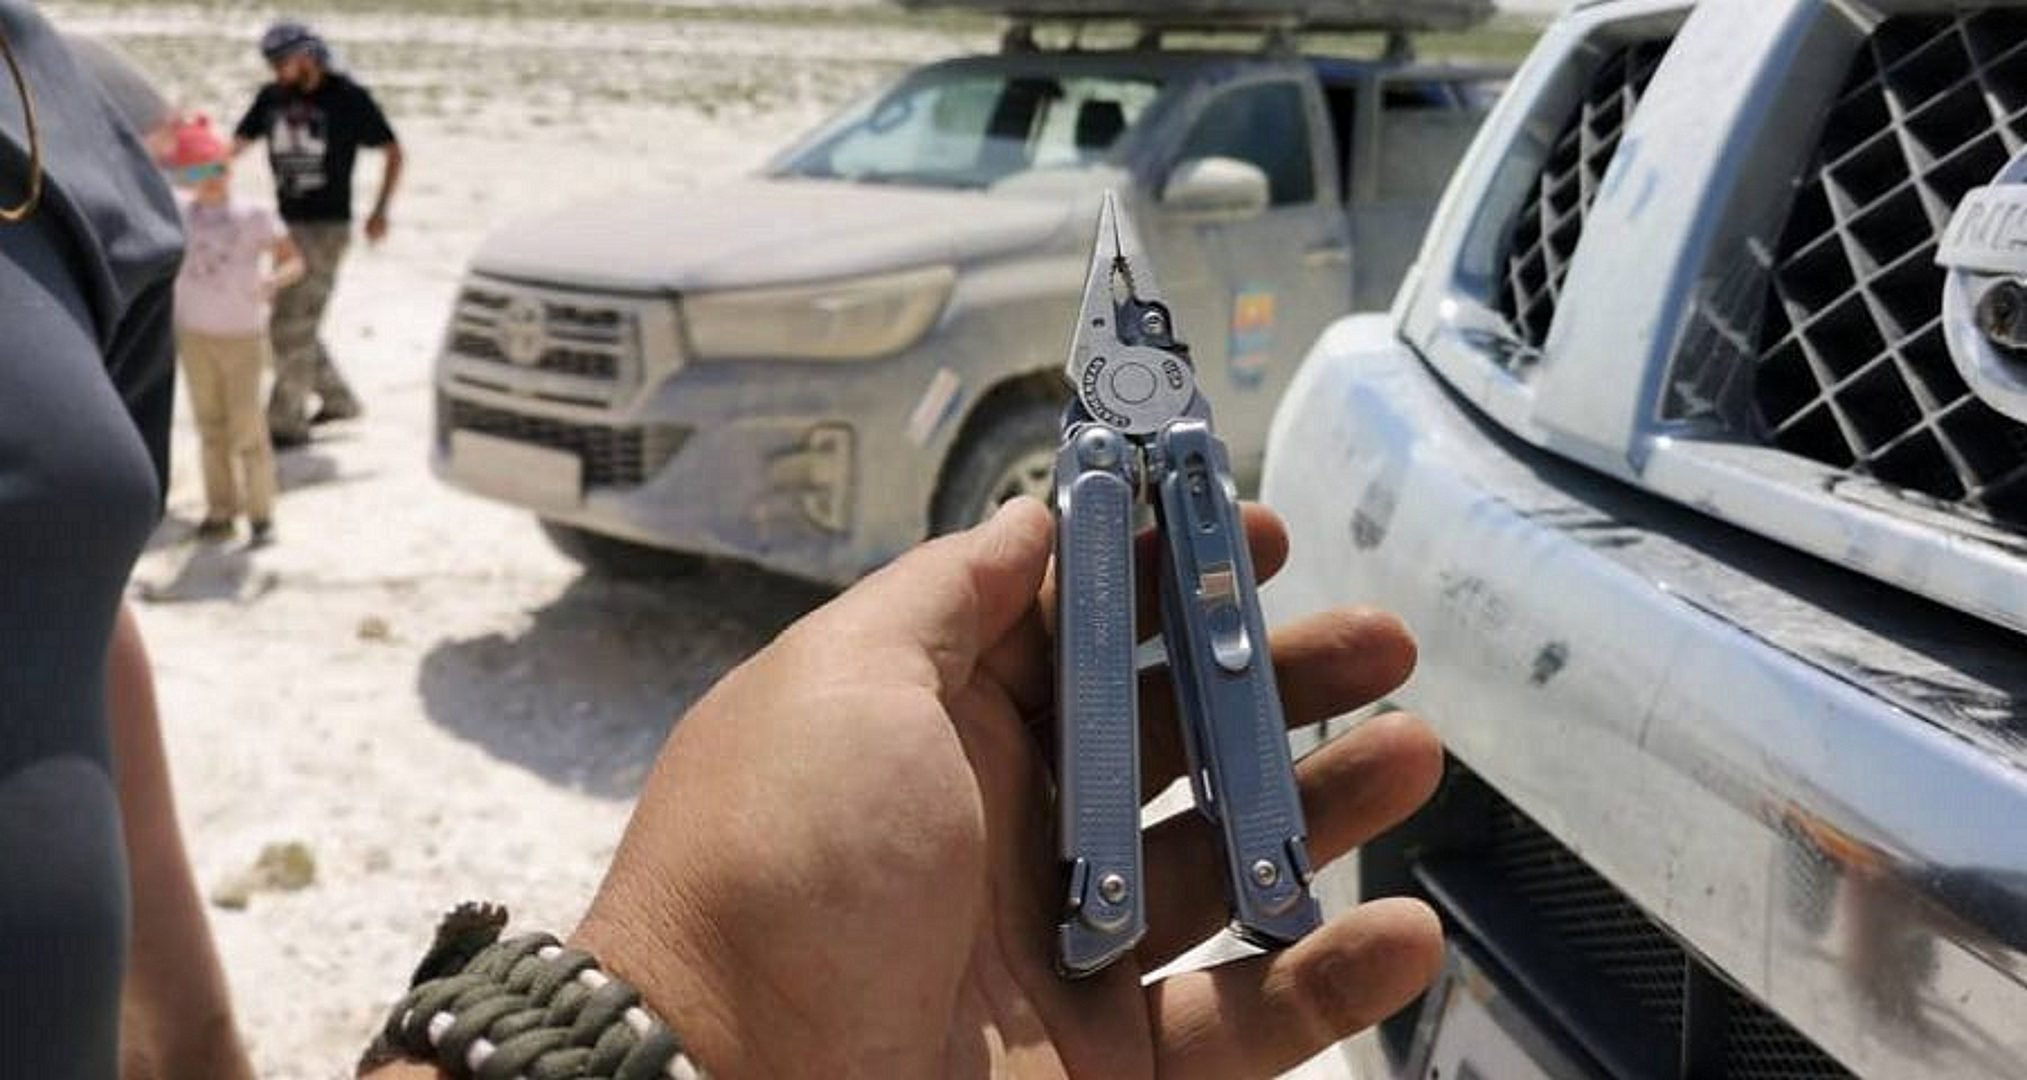 Multitool in a hand The 8 Best EDC Multitools for All Your Needs in the Outdoors